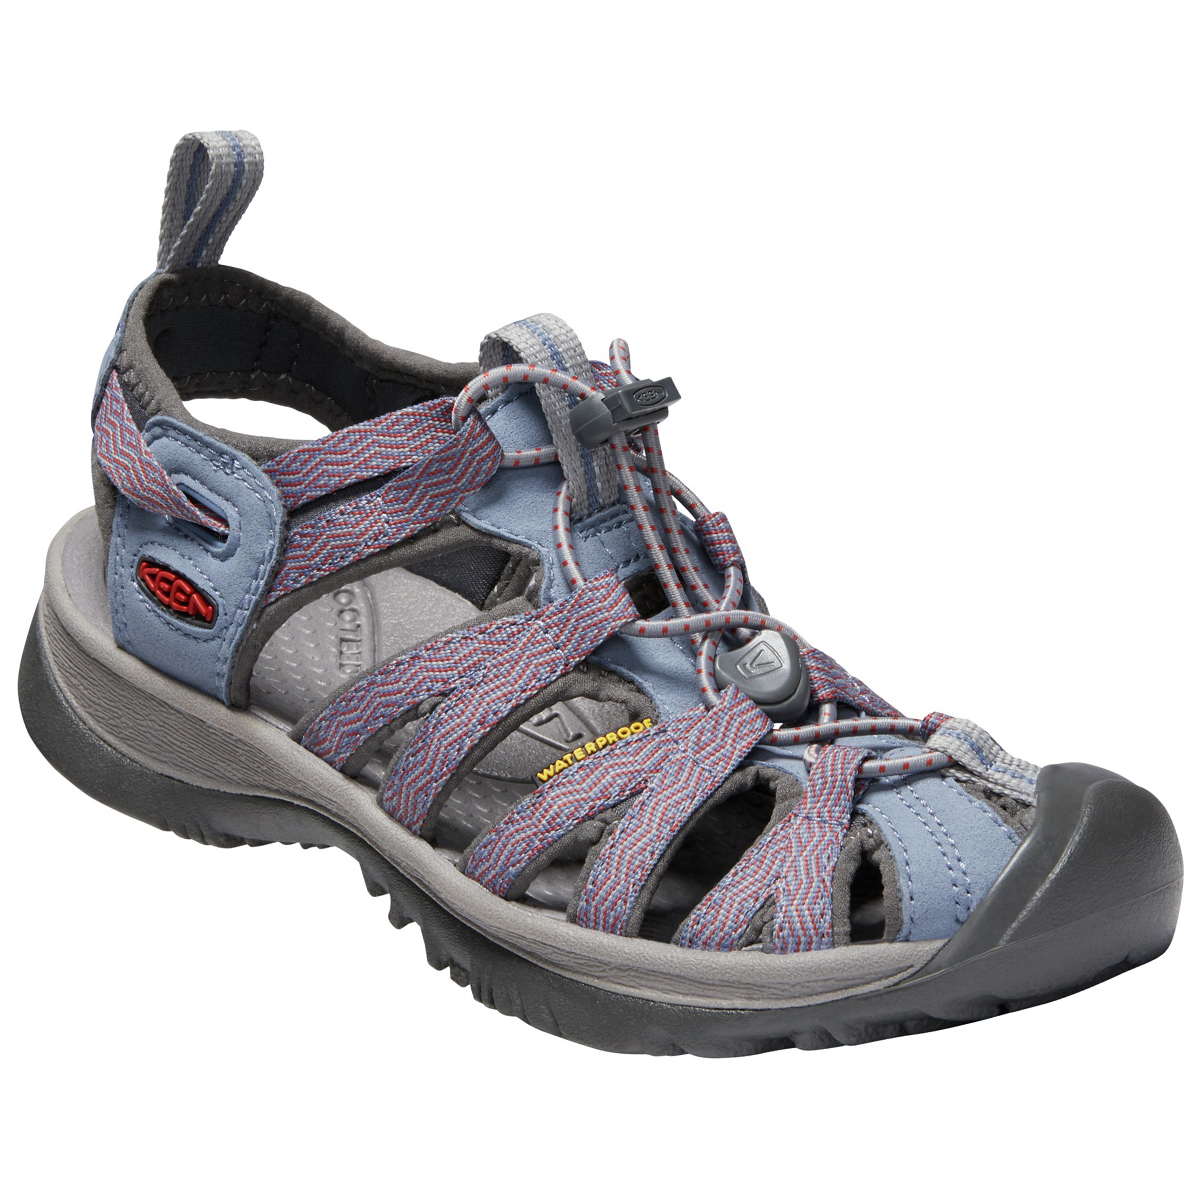 Keen Women's Whisper Sandals - Black, 7.5